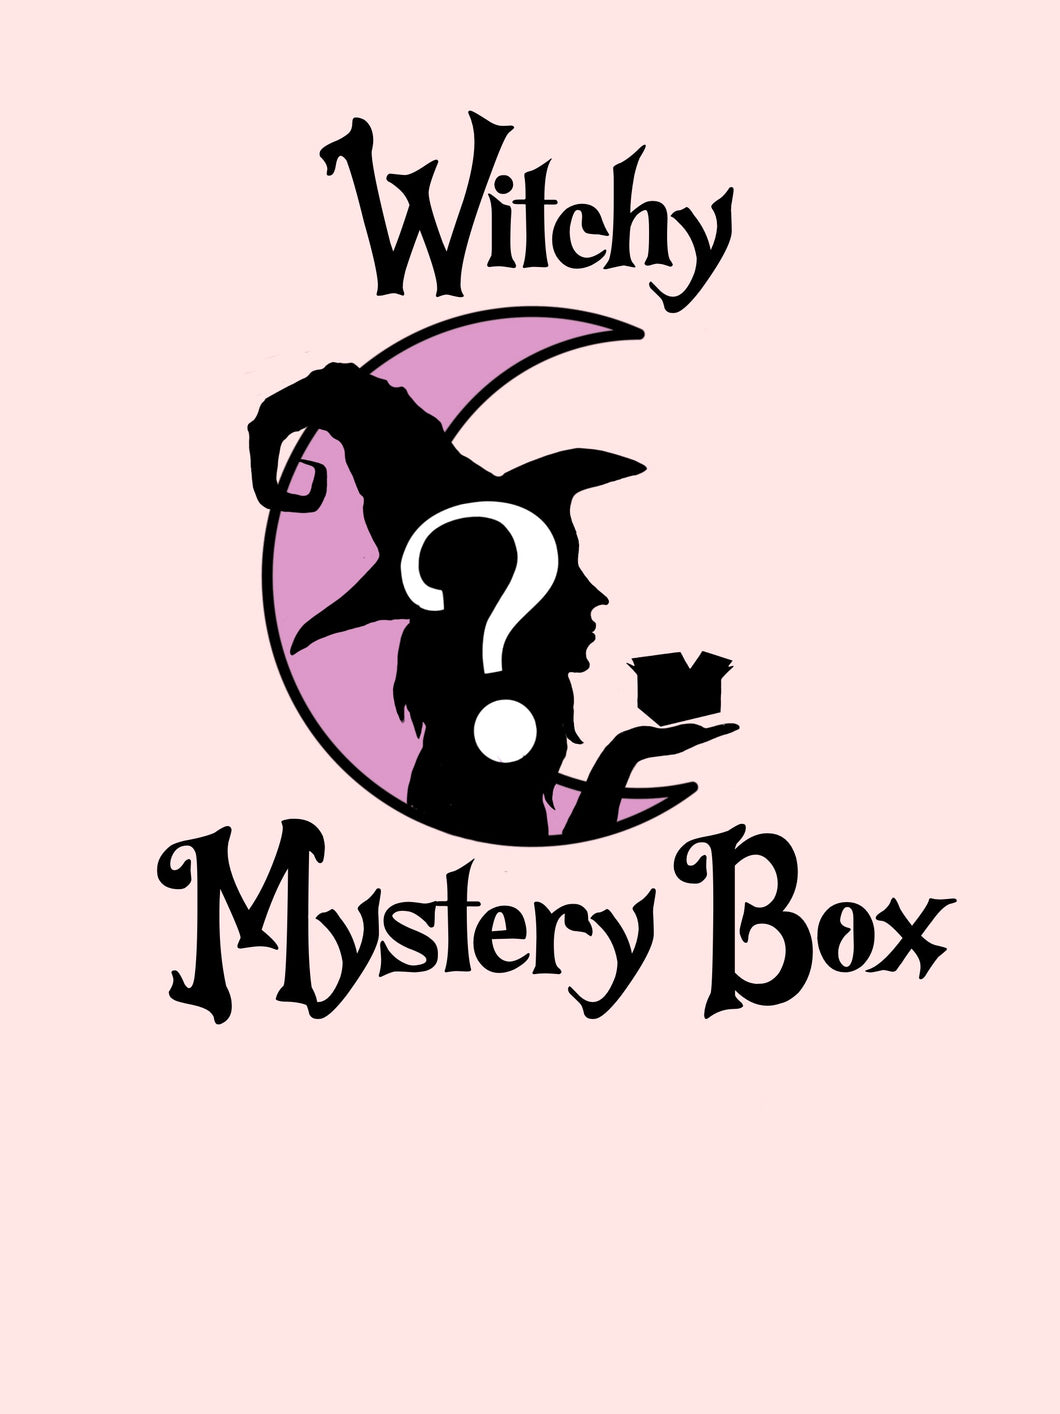 Witchy Mystery Box- Available in 2 sizes